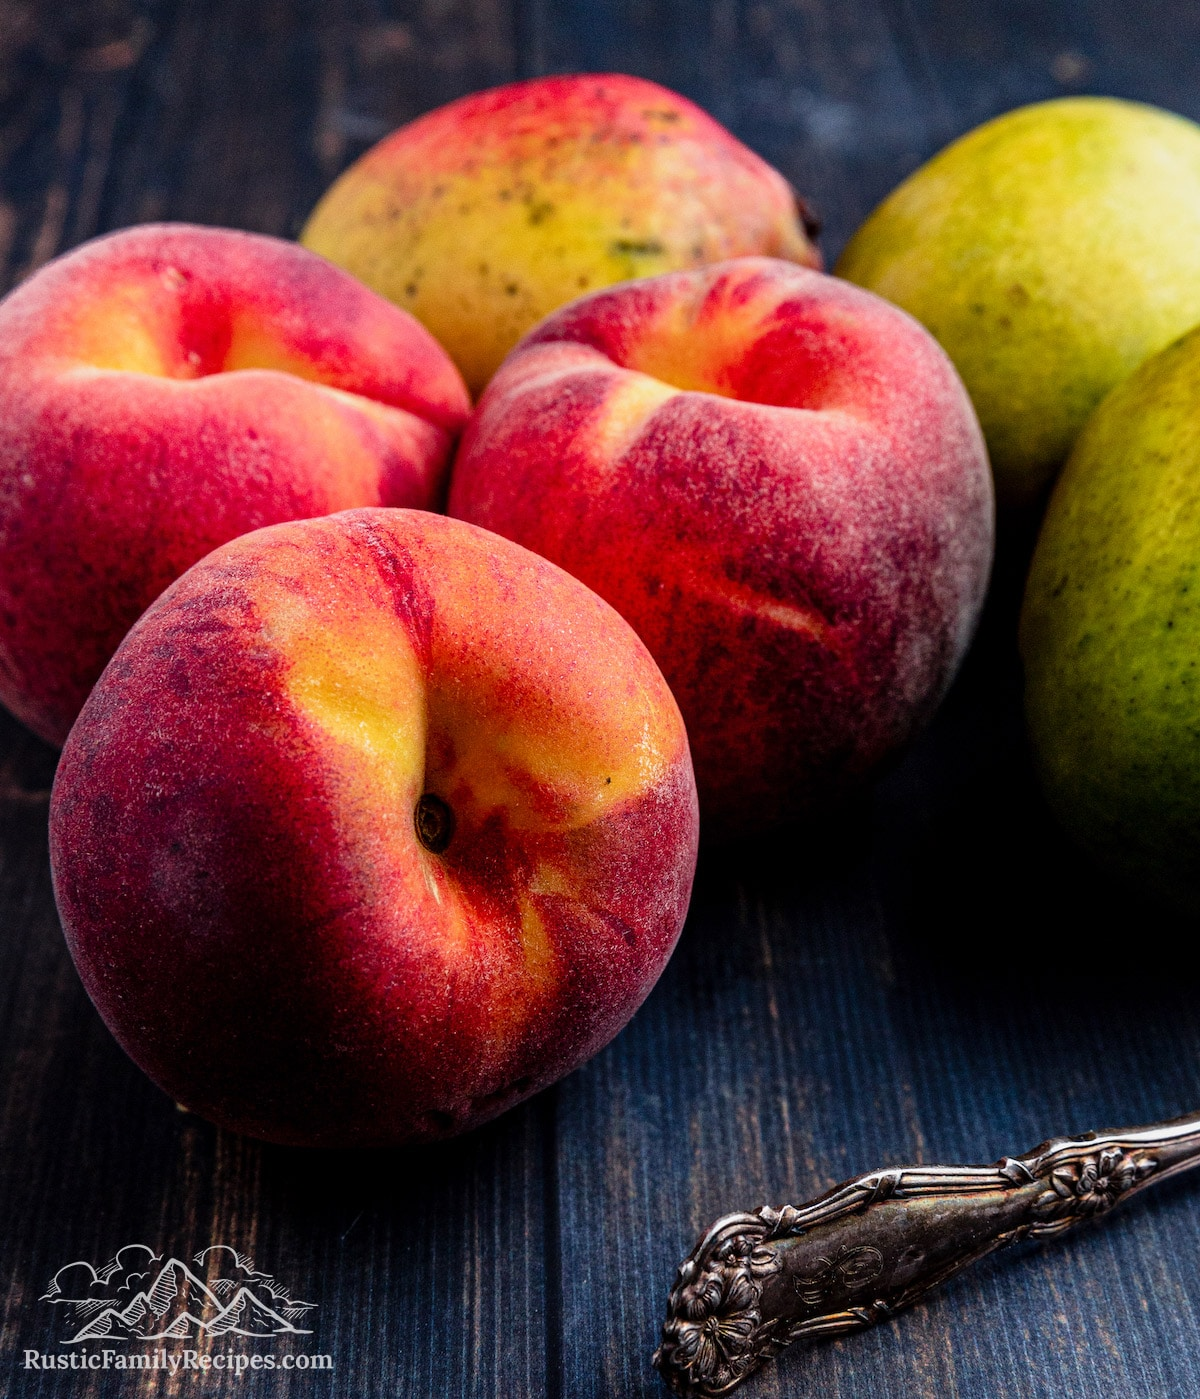 Closeup photo of 3 peaches, with 3 mangos in the background